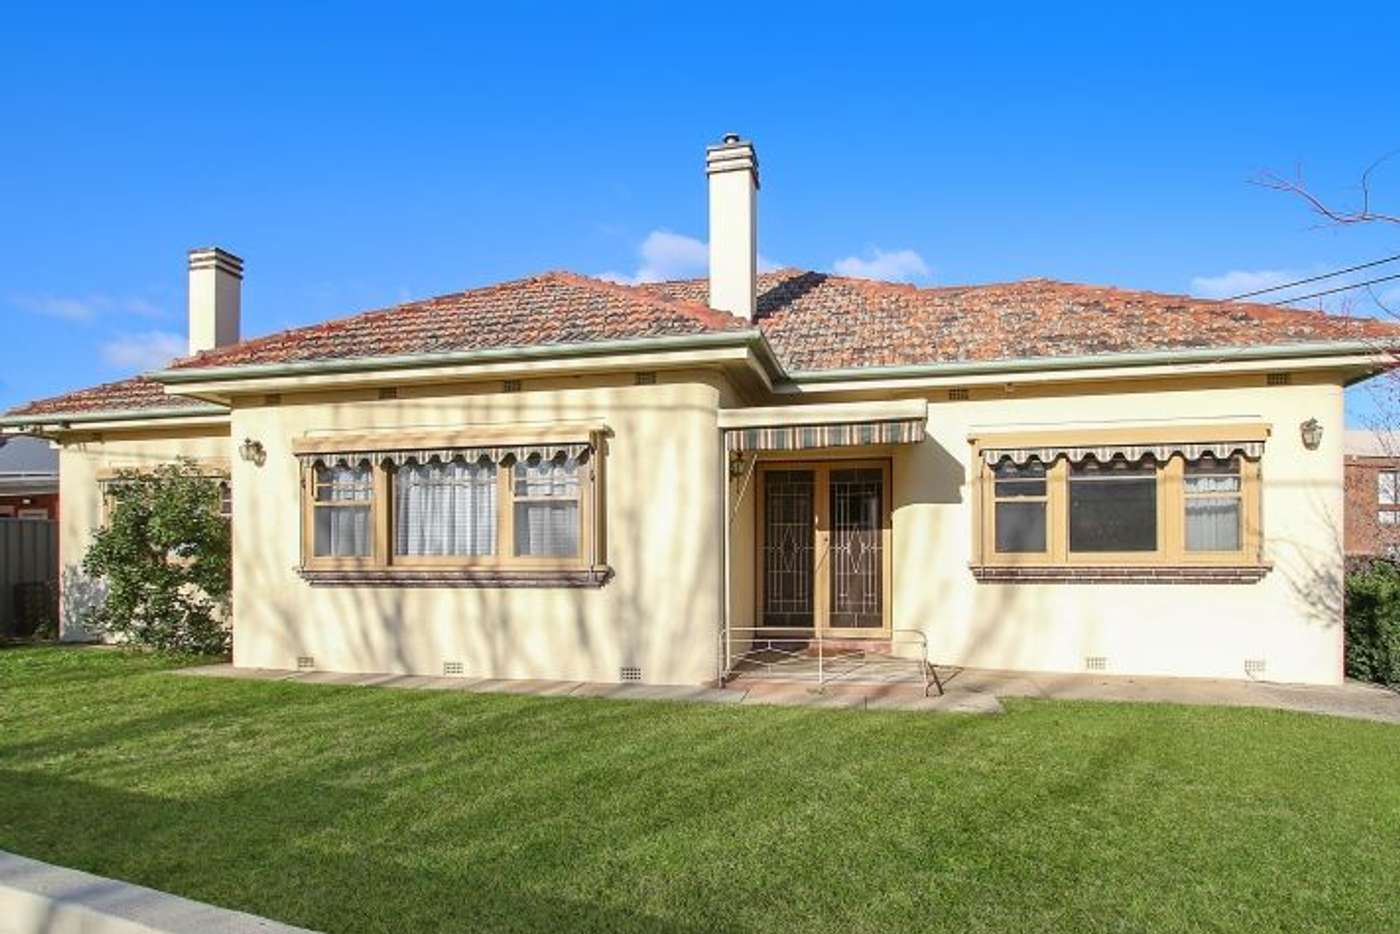 Main view of Homely townhouse listing, 516 Creek Street, Albury NSW 2640